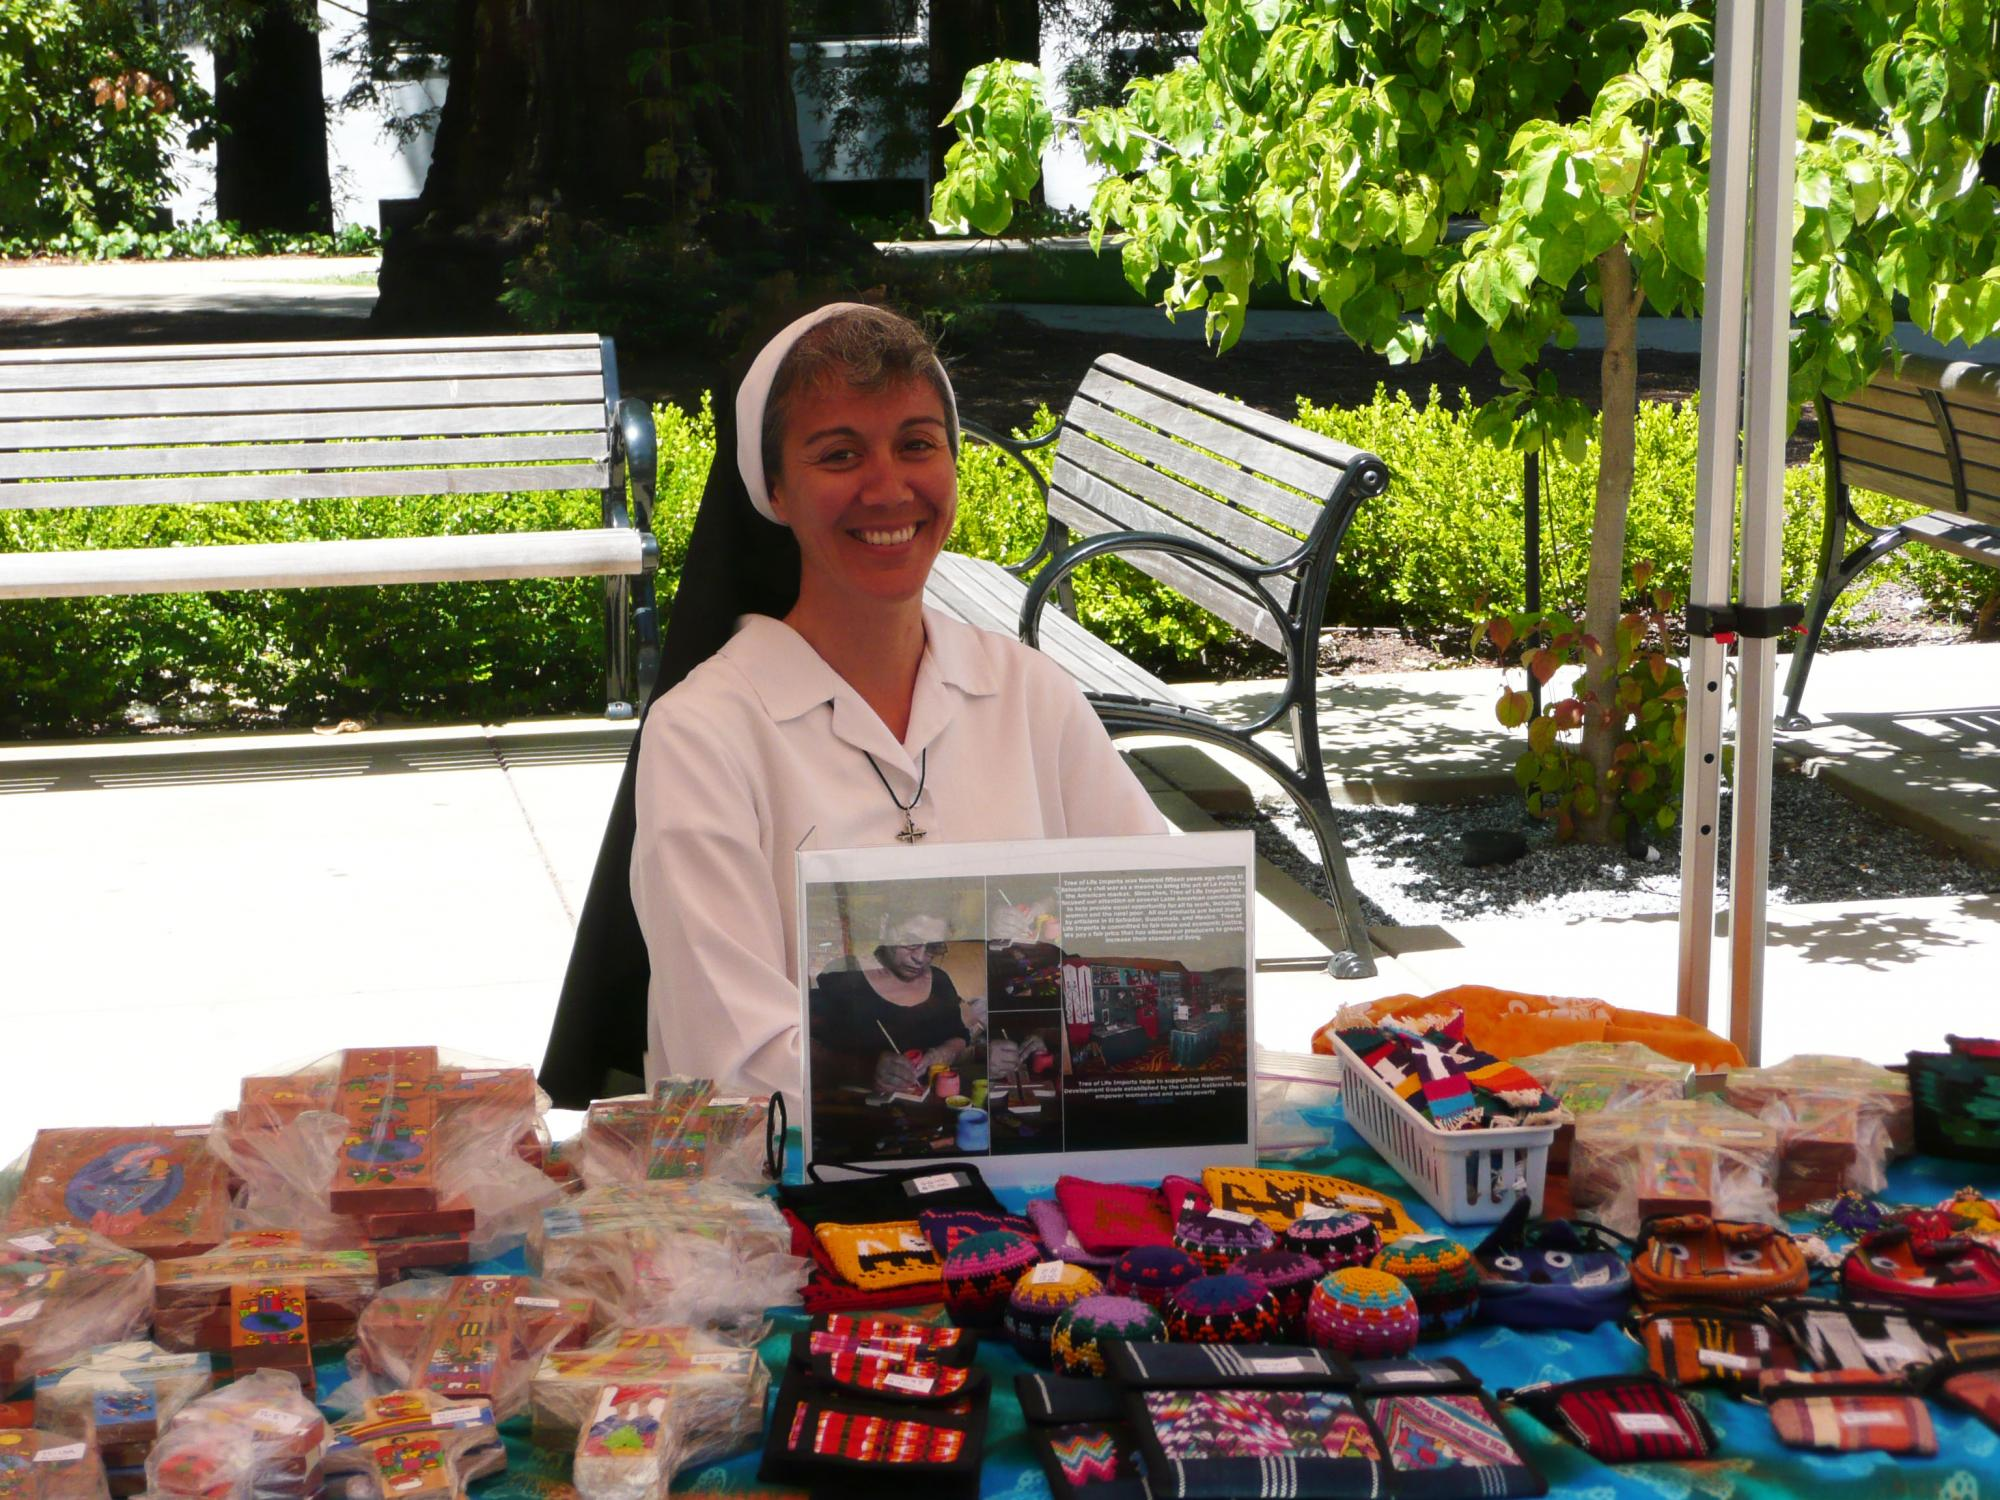 Sister Jodi Min shared her fair-trade products.